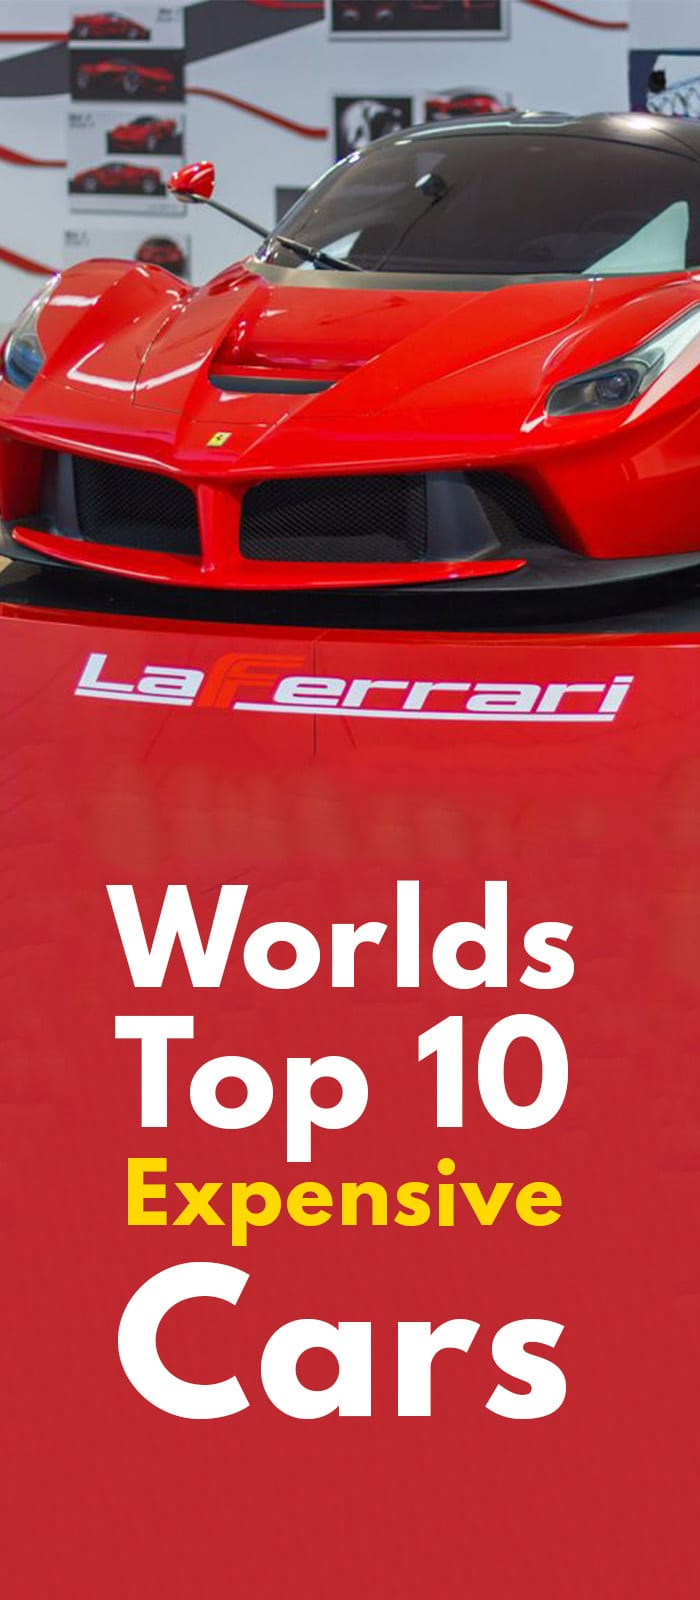 WORLDS TOP 10 EXPENSIVE CAR